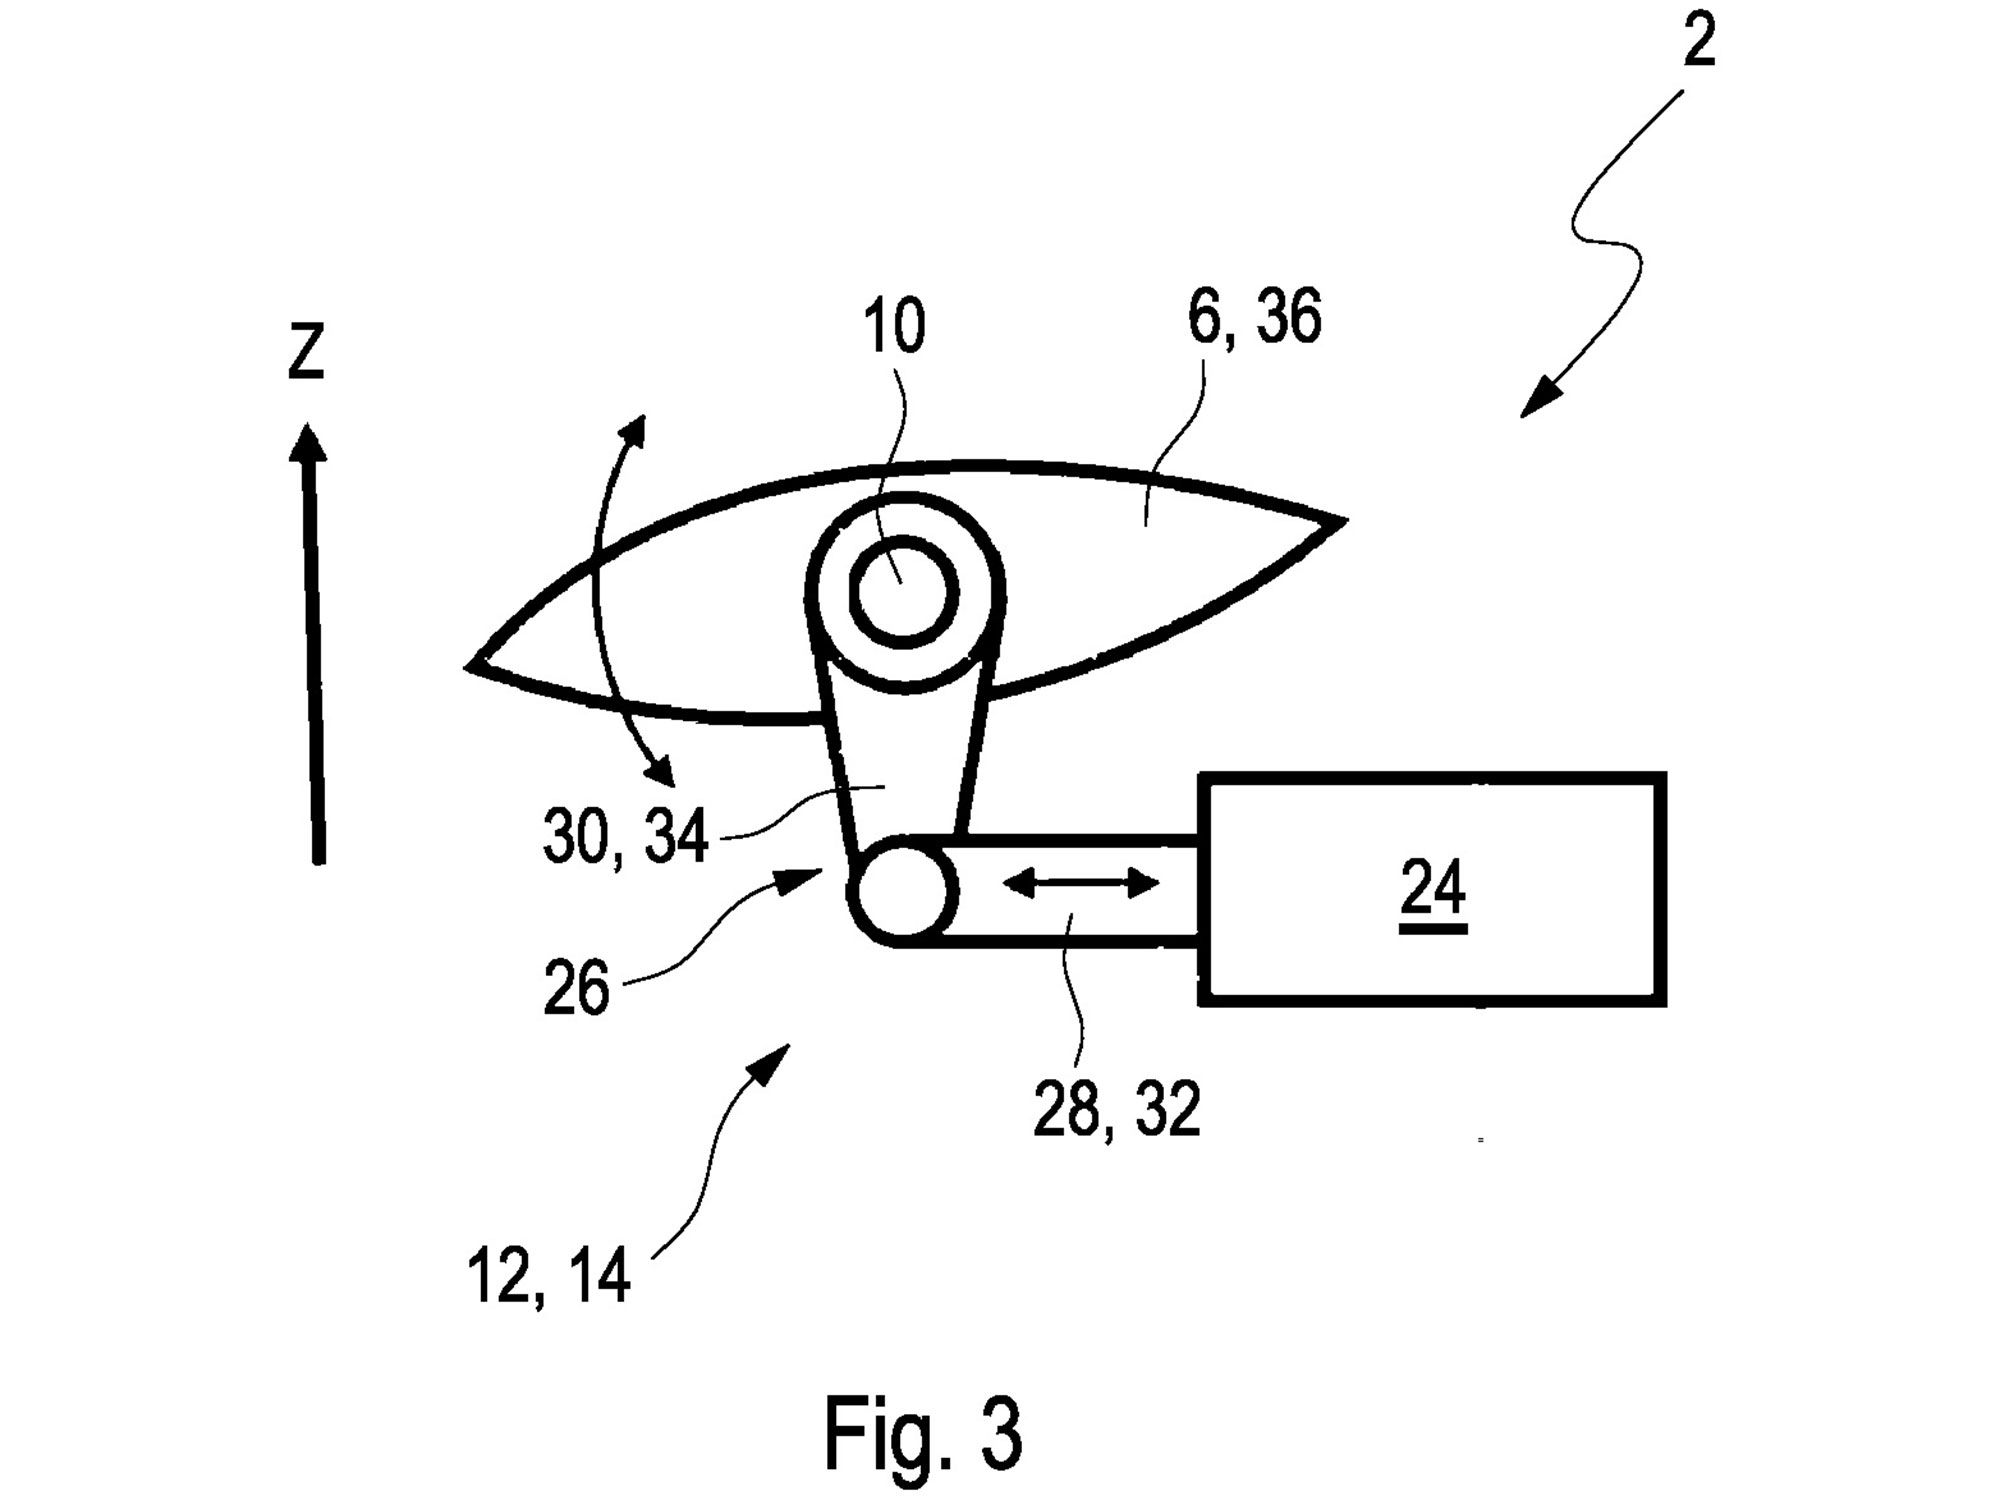 One of the patents shows a simple single actuator working on the winglet to change its angle.